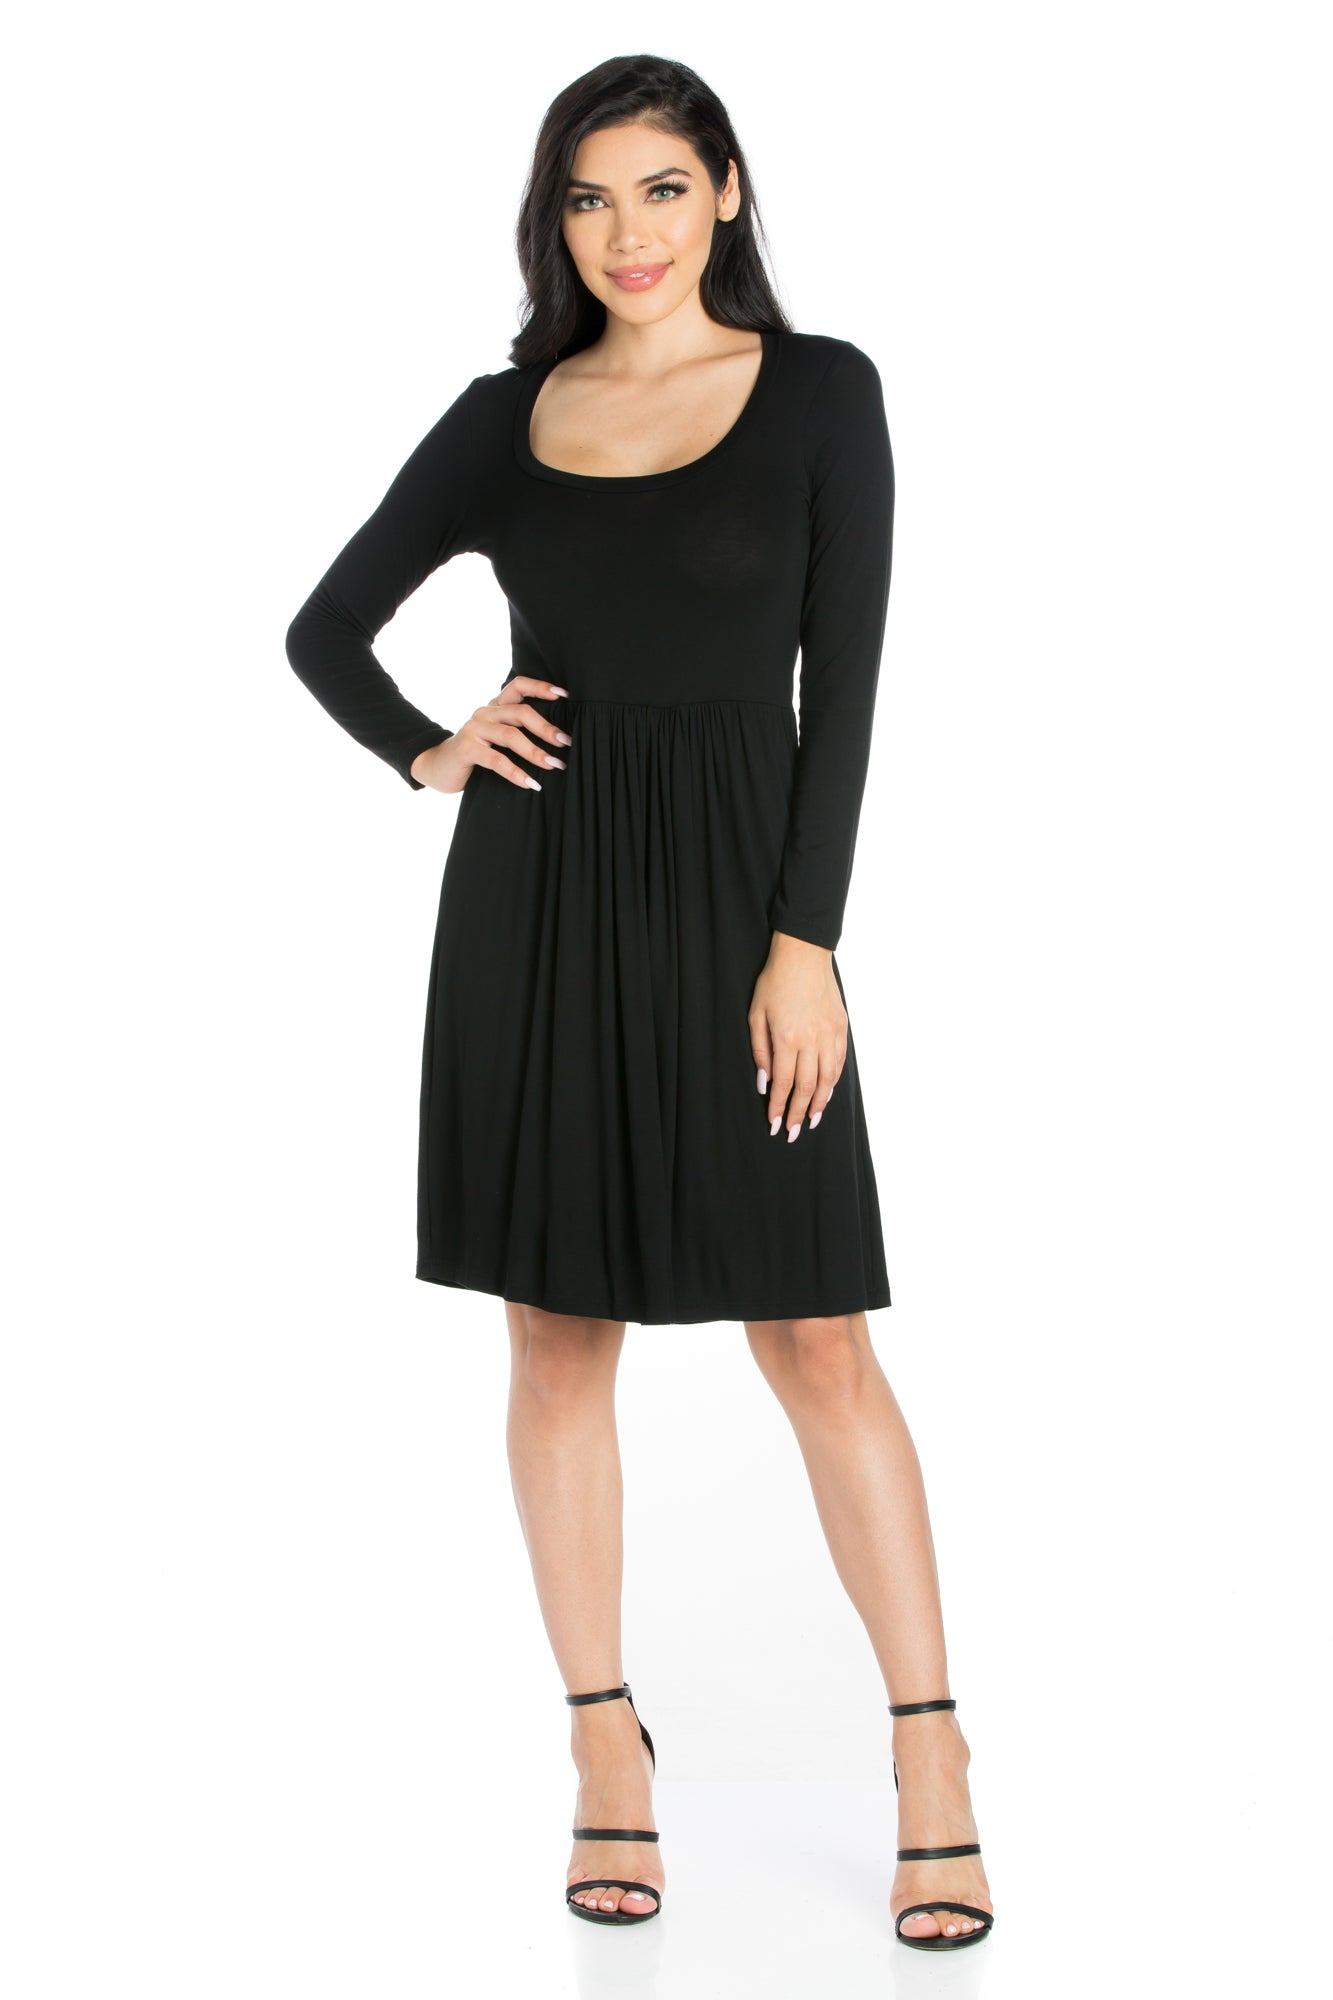 24seven Comfort Apparel Casual Long Sleeve Pleated Dress-Dresses-24Seven Comfort Apparel-BLACK-S-24/7 Comfort Apparel